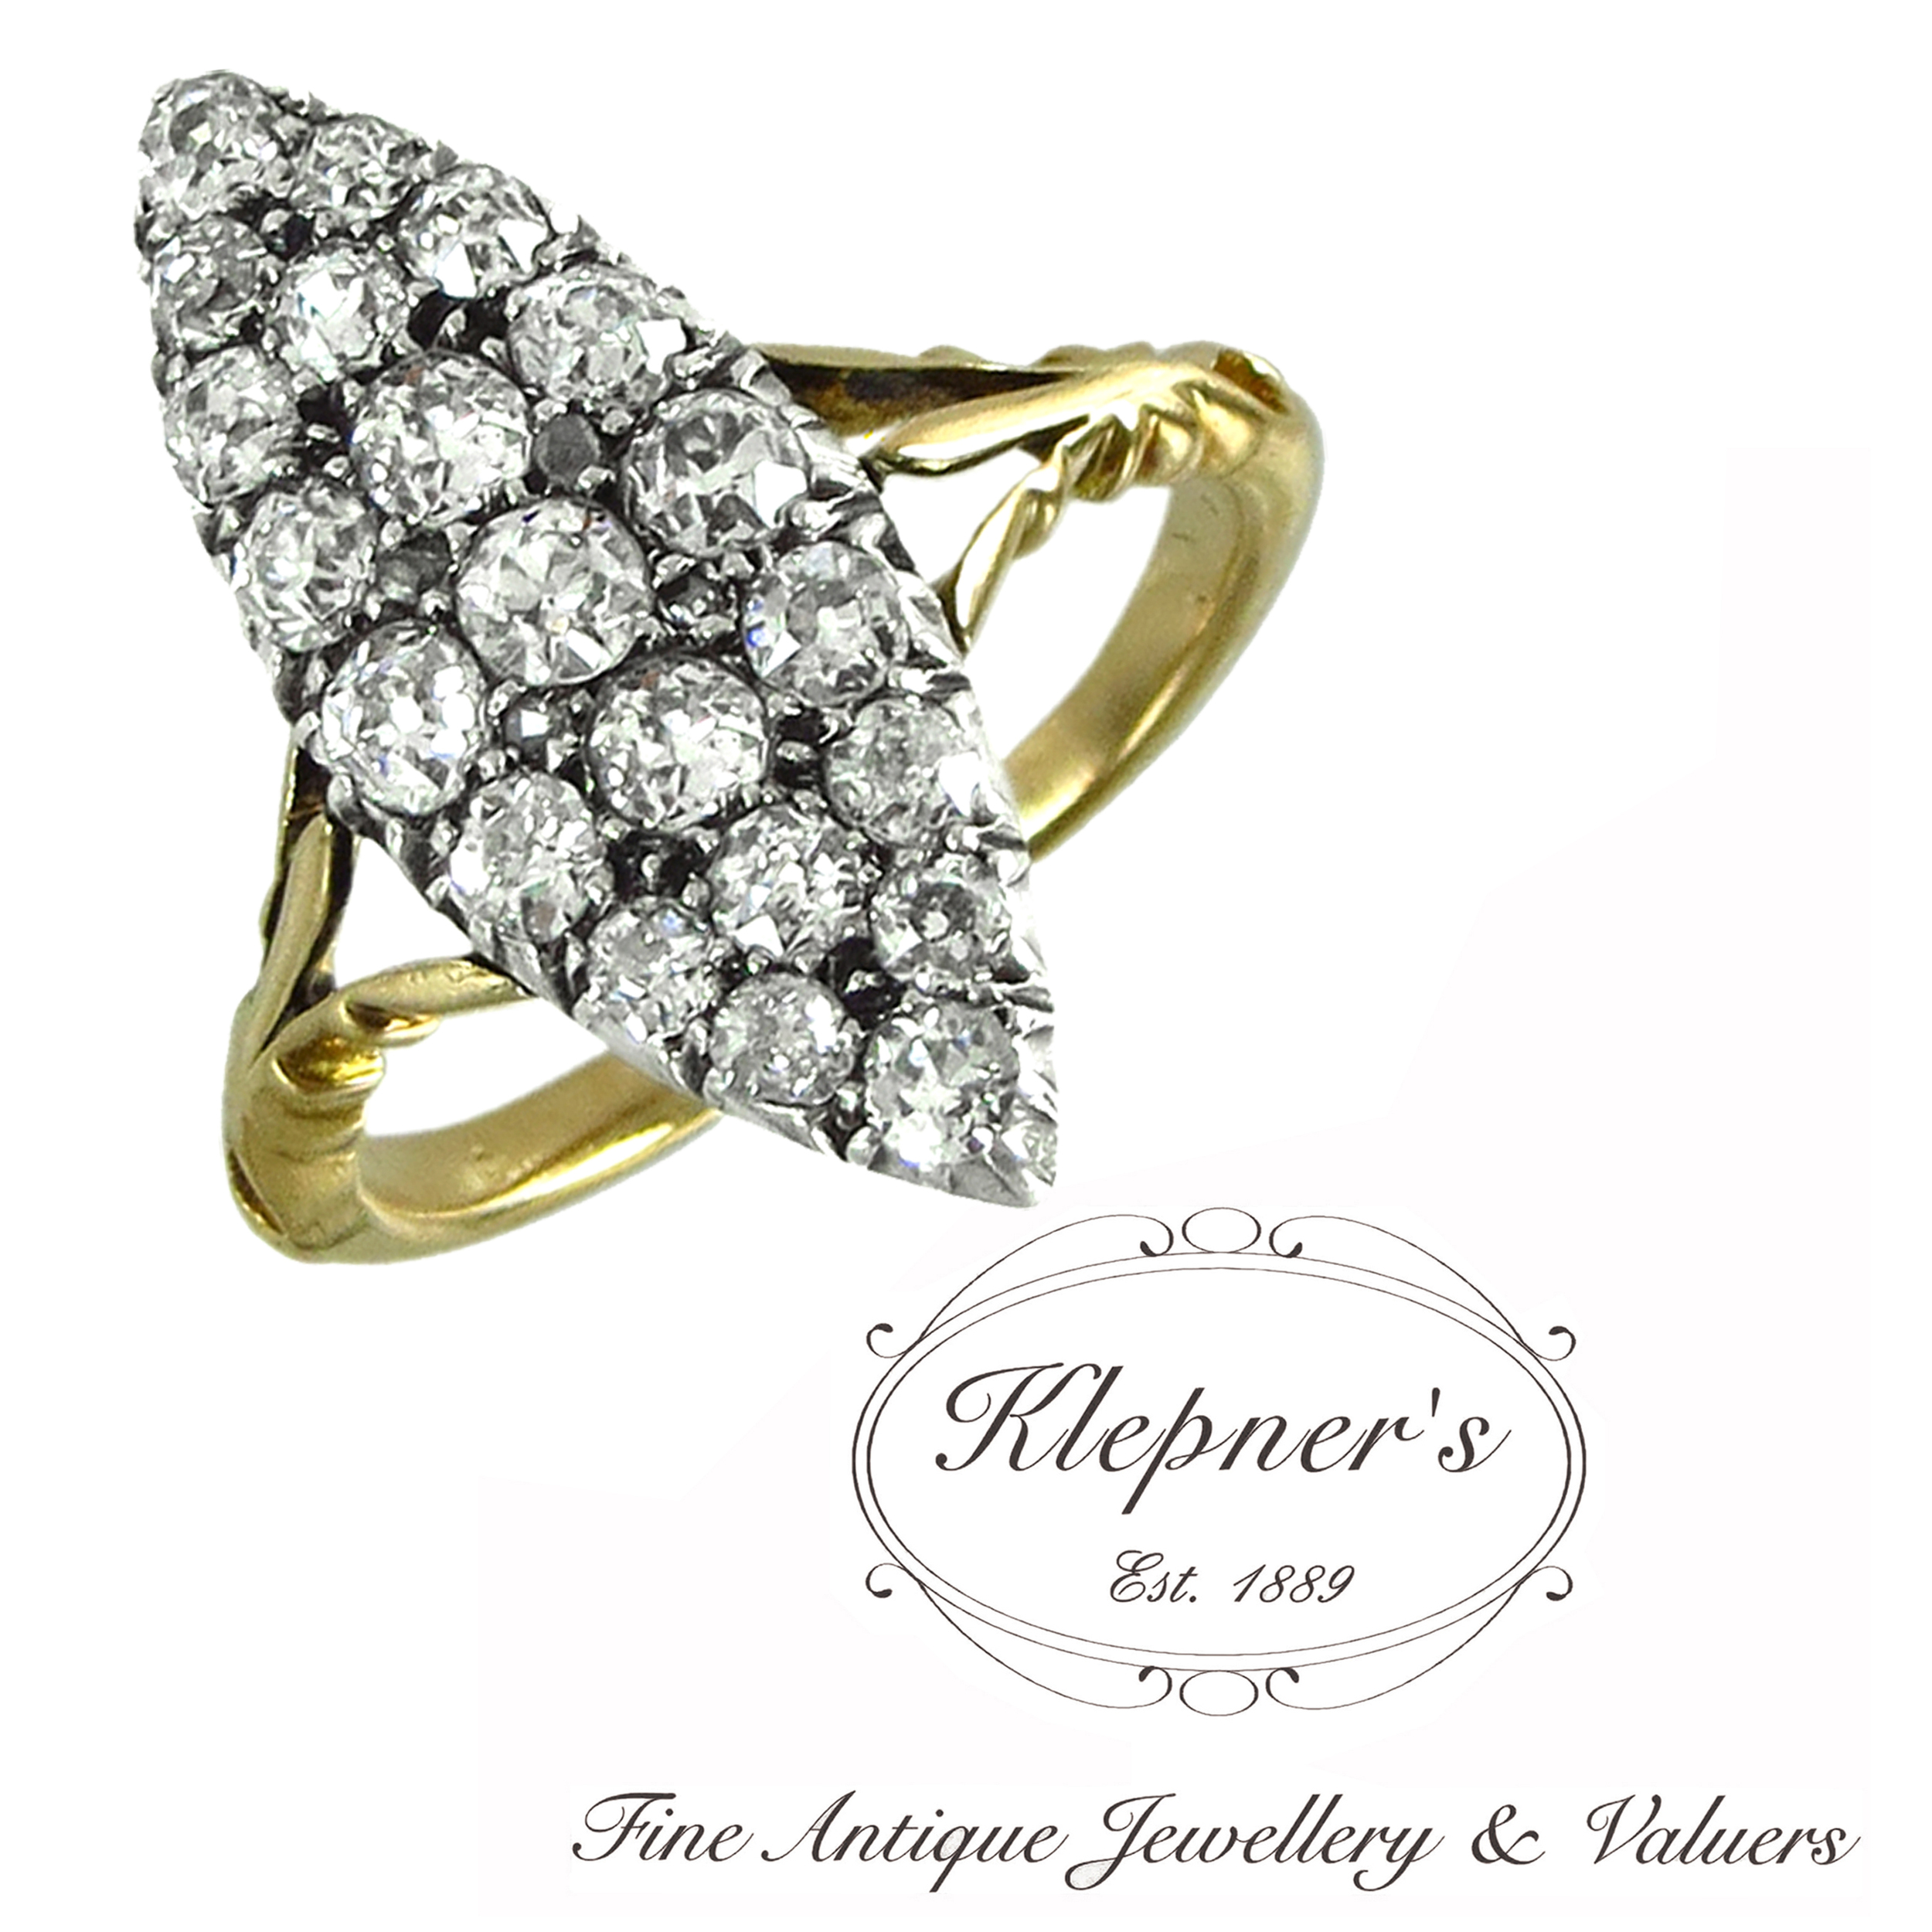 Ask us about placing your jewellery on consignment.